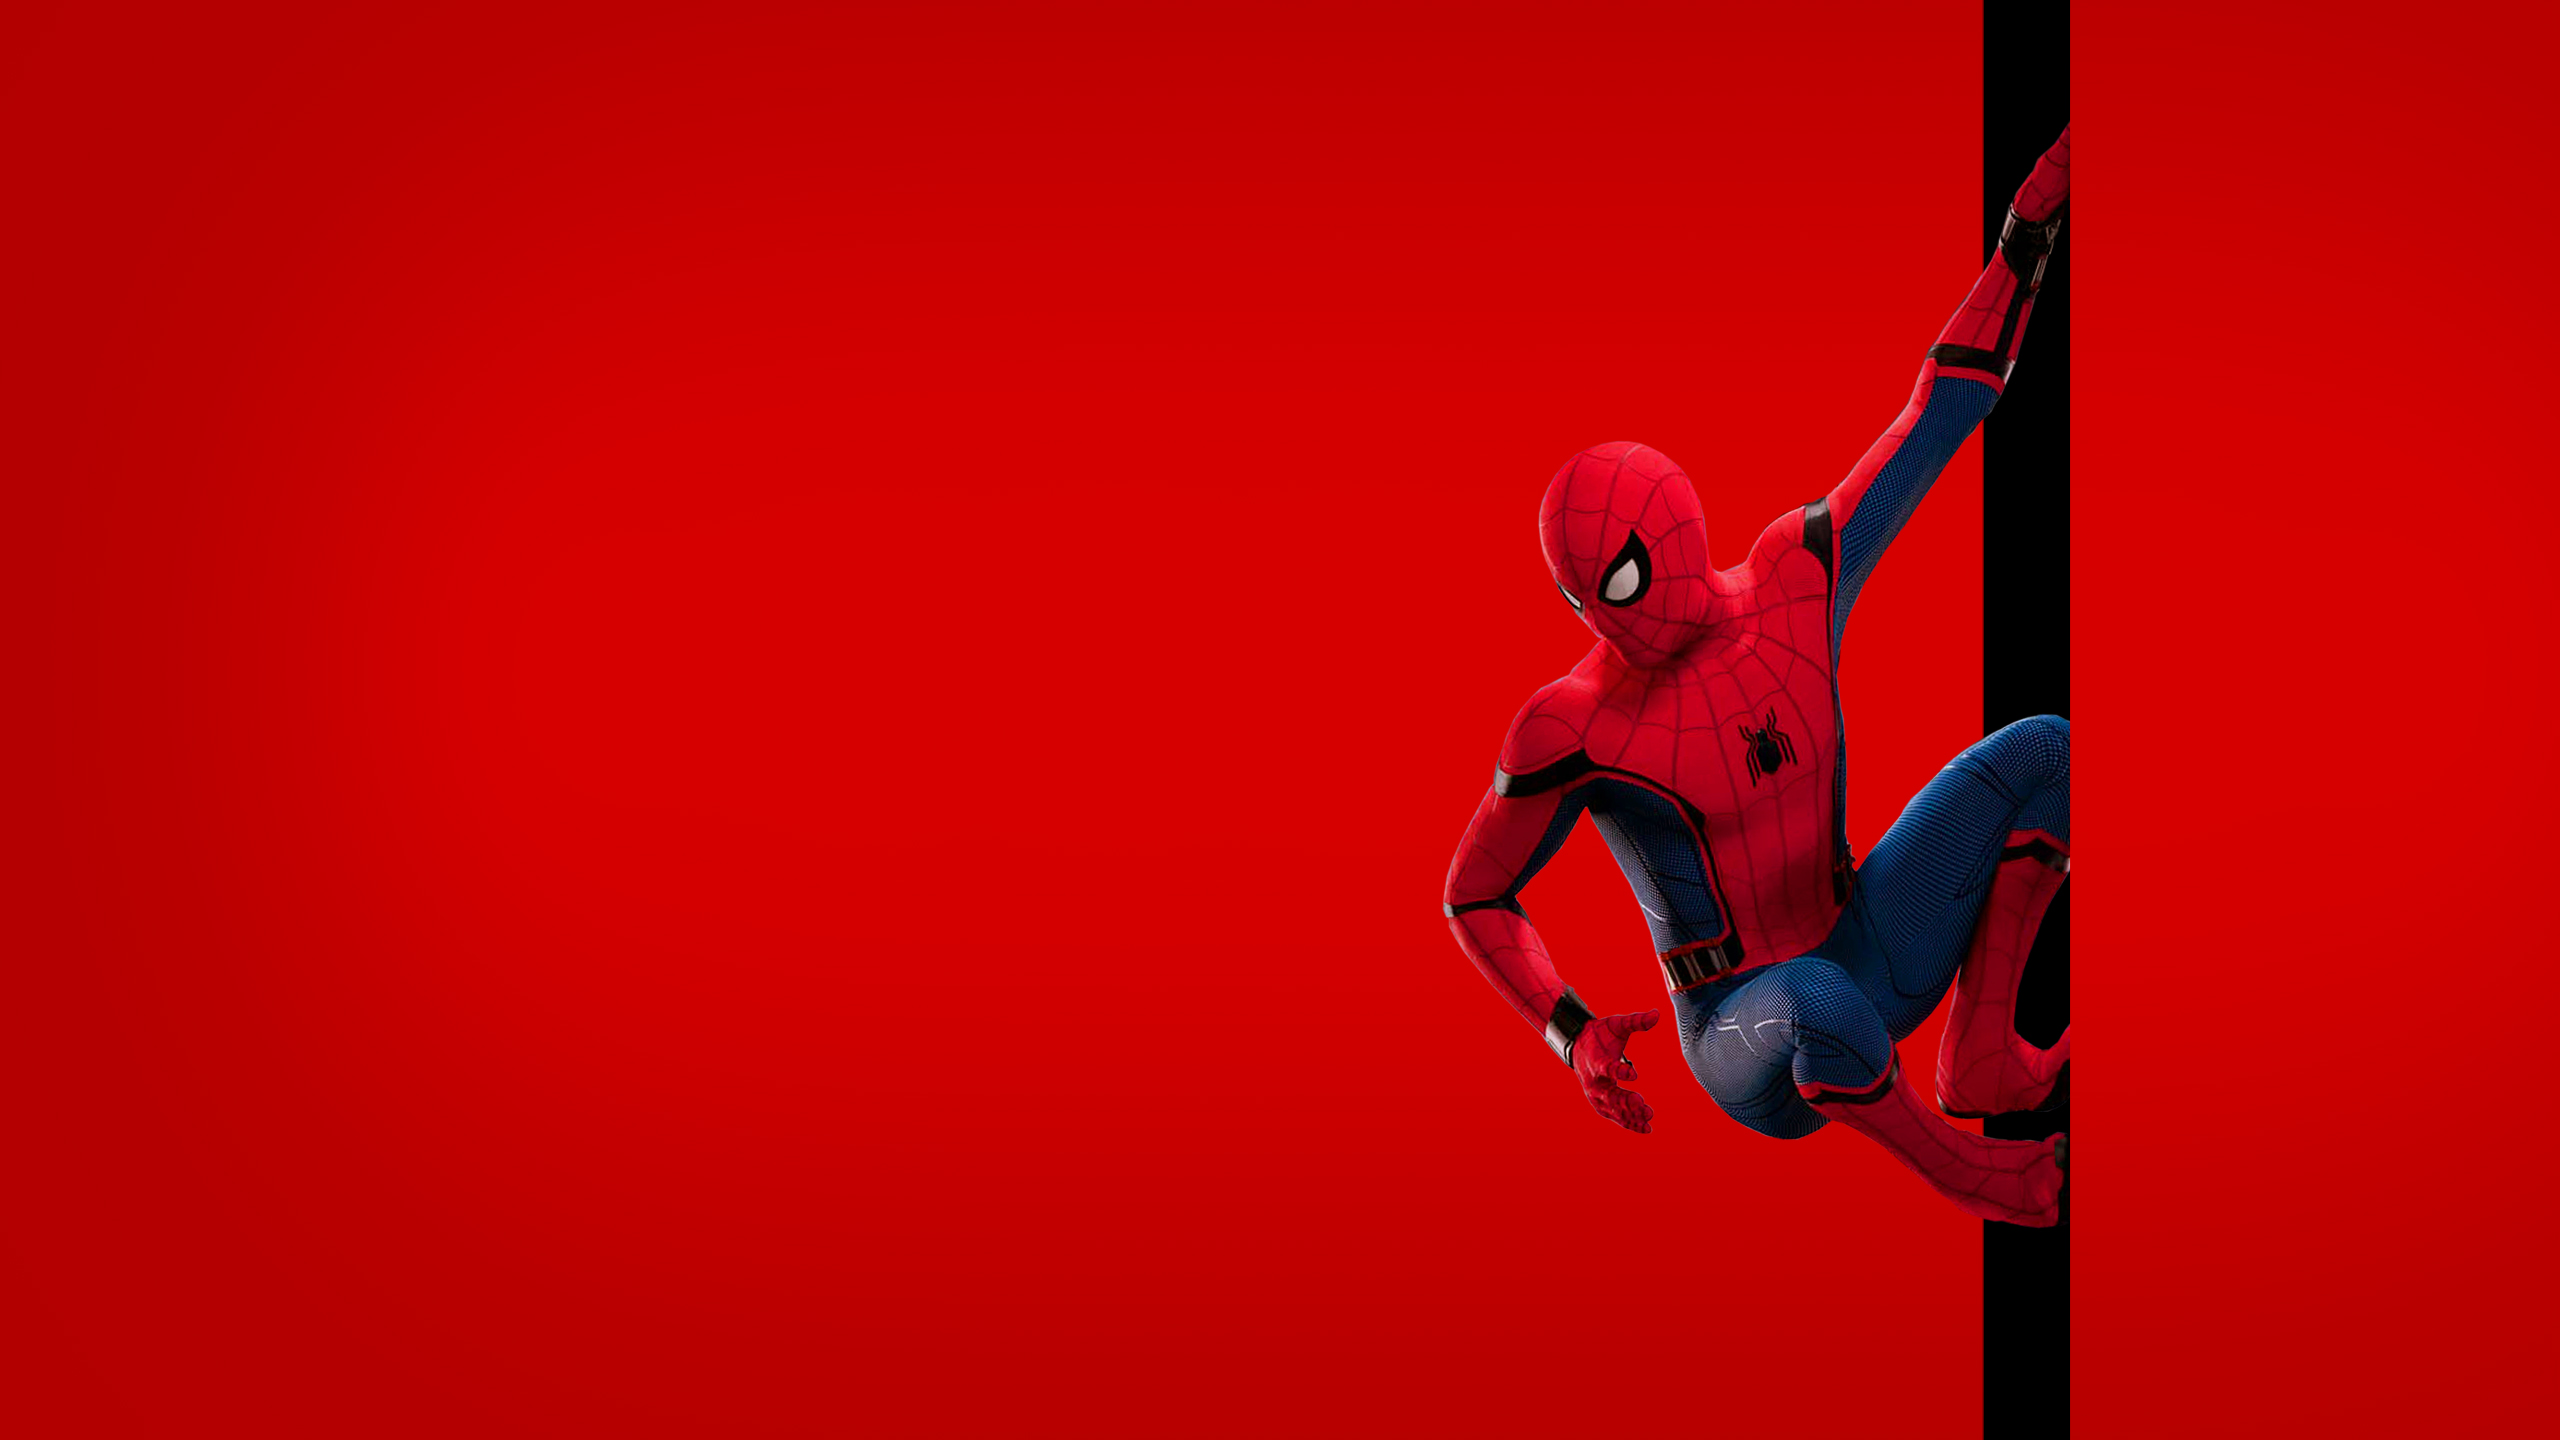 spiderman wallpaper 71 - [2560x1440]